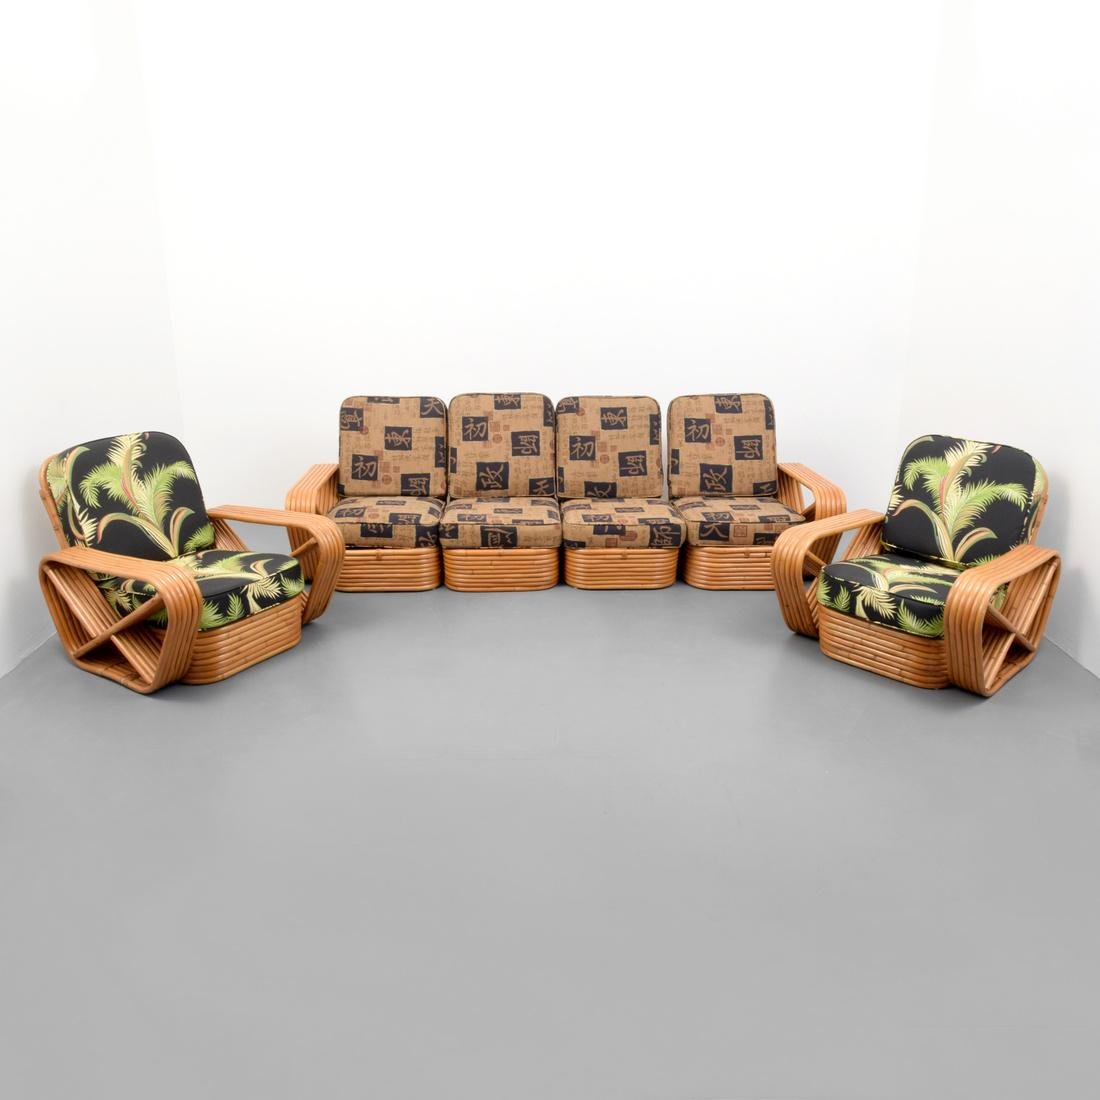 Rattan Sofa & 2 Lounge Chairs, Manner of Paul Frankl